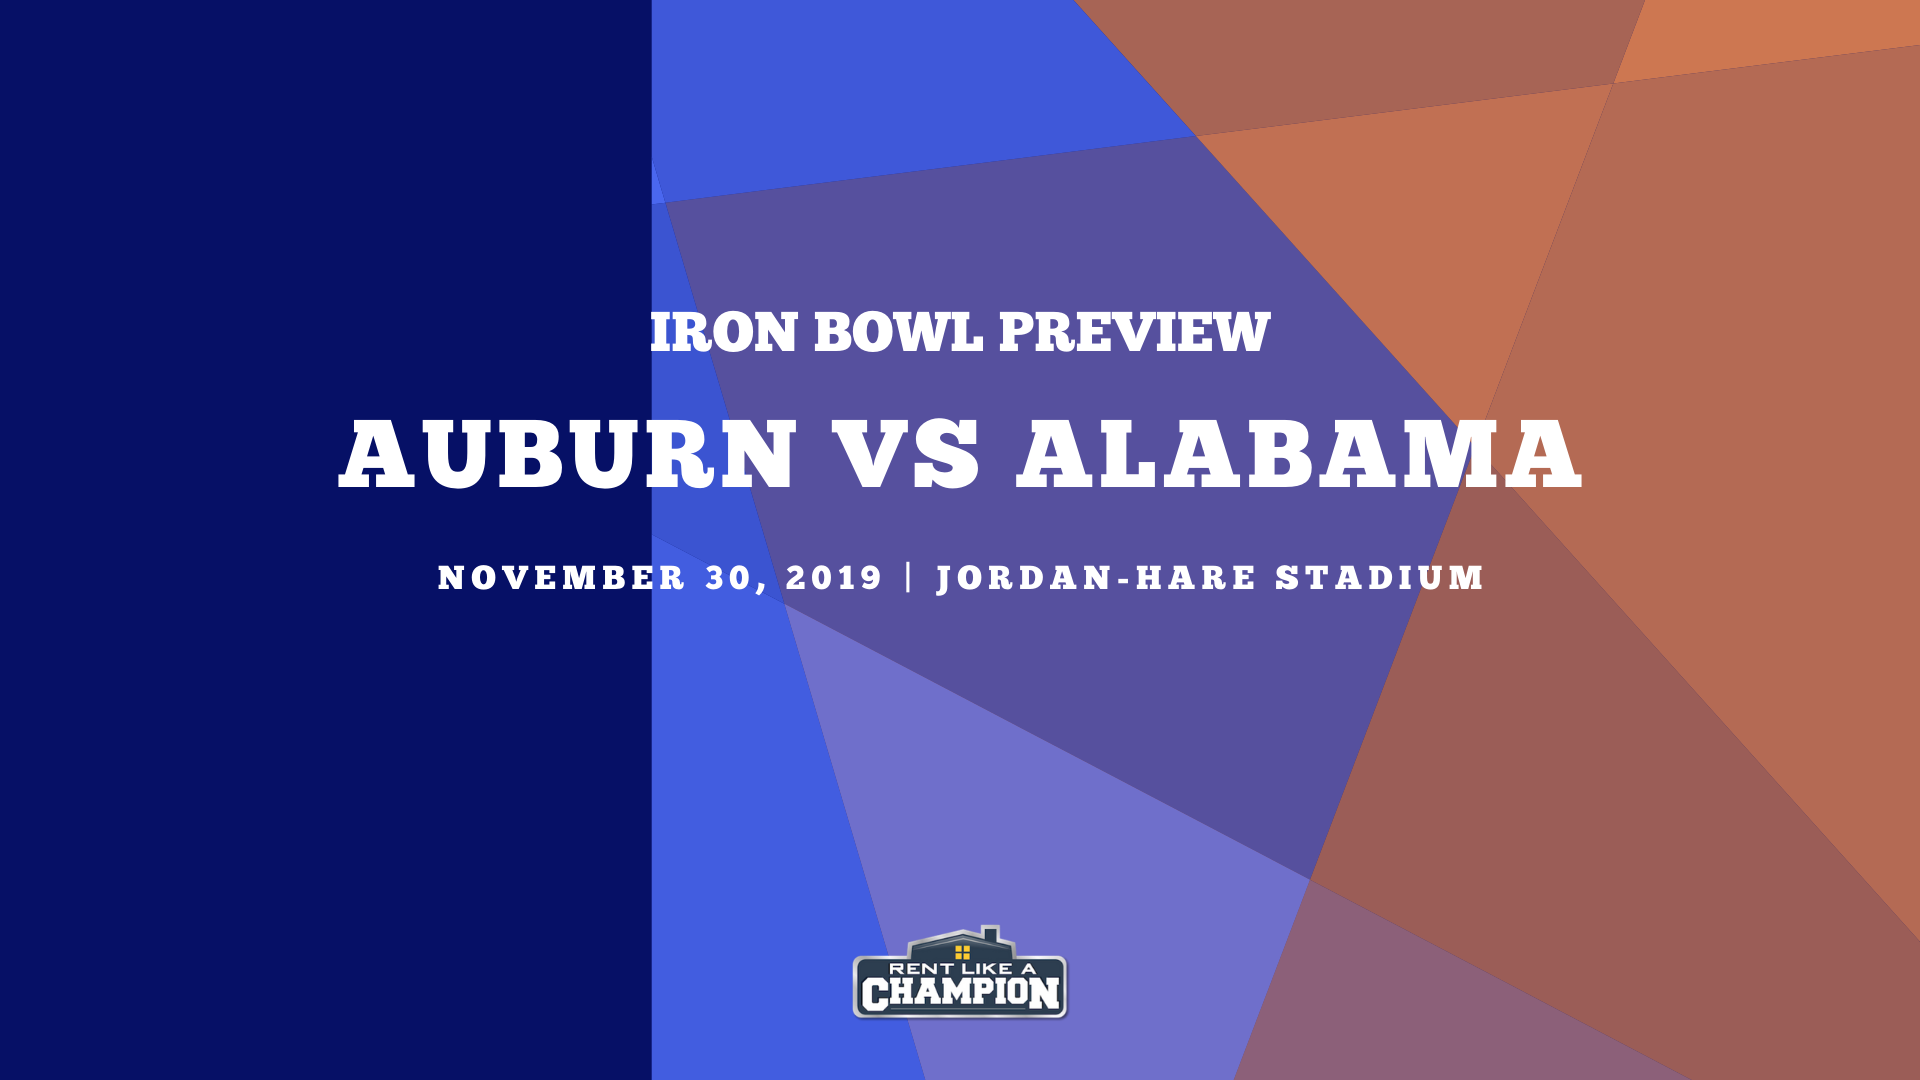 Auburn Game Preview Template (10)